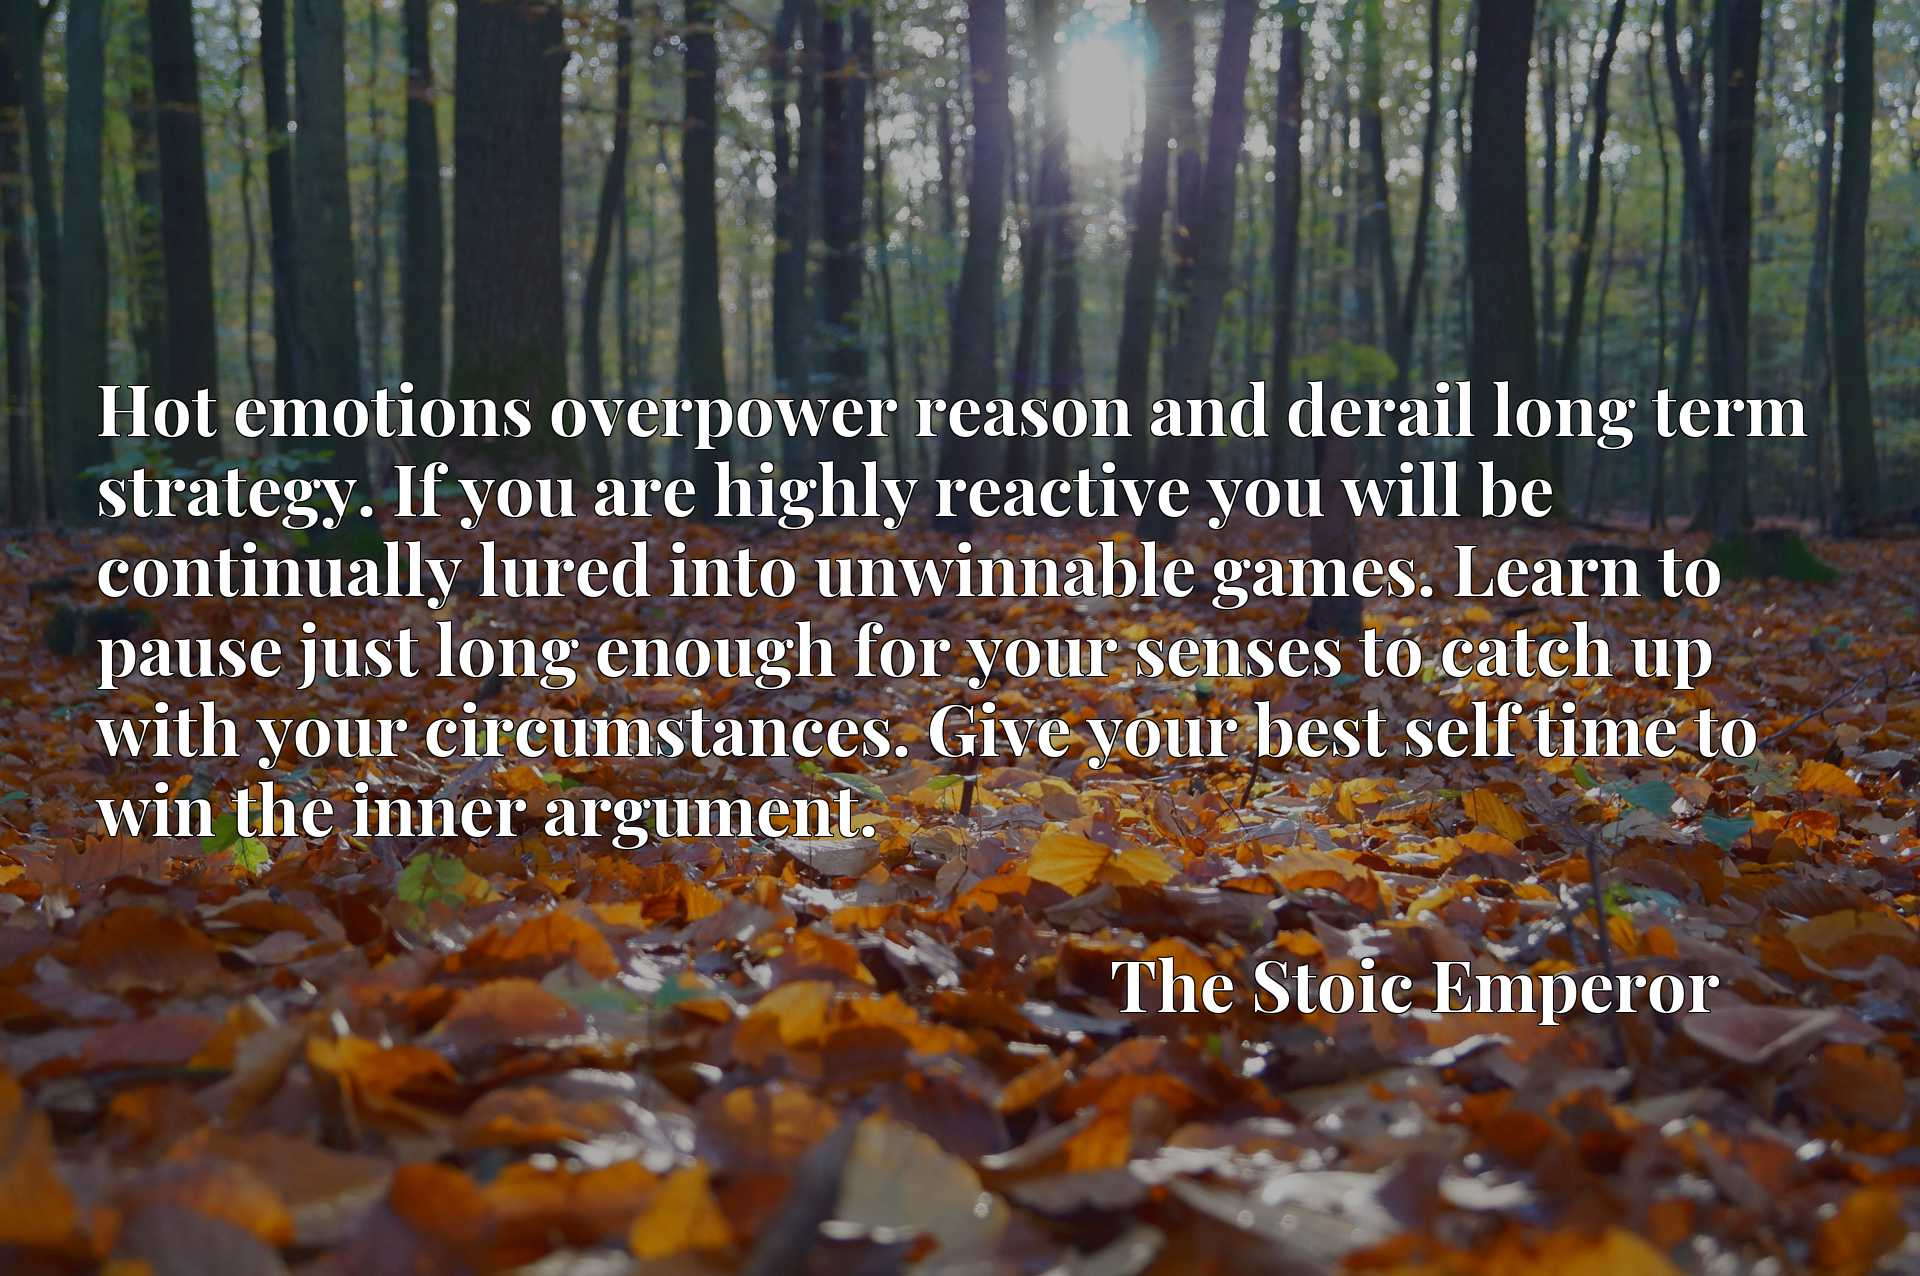 Quote Picture :Hot emotions overpower reason and derail long term strategy. If you are highly reactive you will be continually lured into unwinnable games. Learn to pause just long enough for your senses to catch up with your circumstances. Give your best self time to win the inner argument.